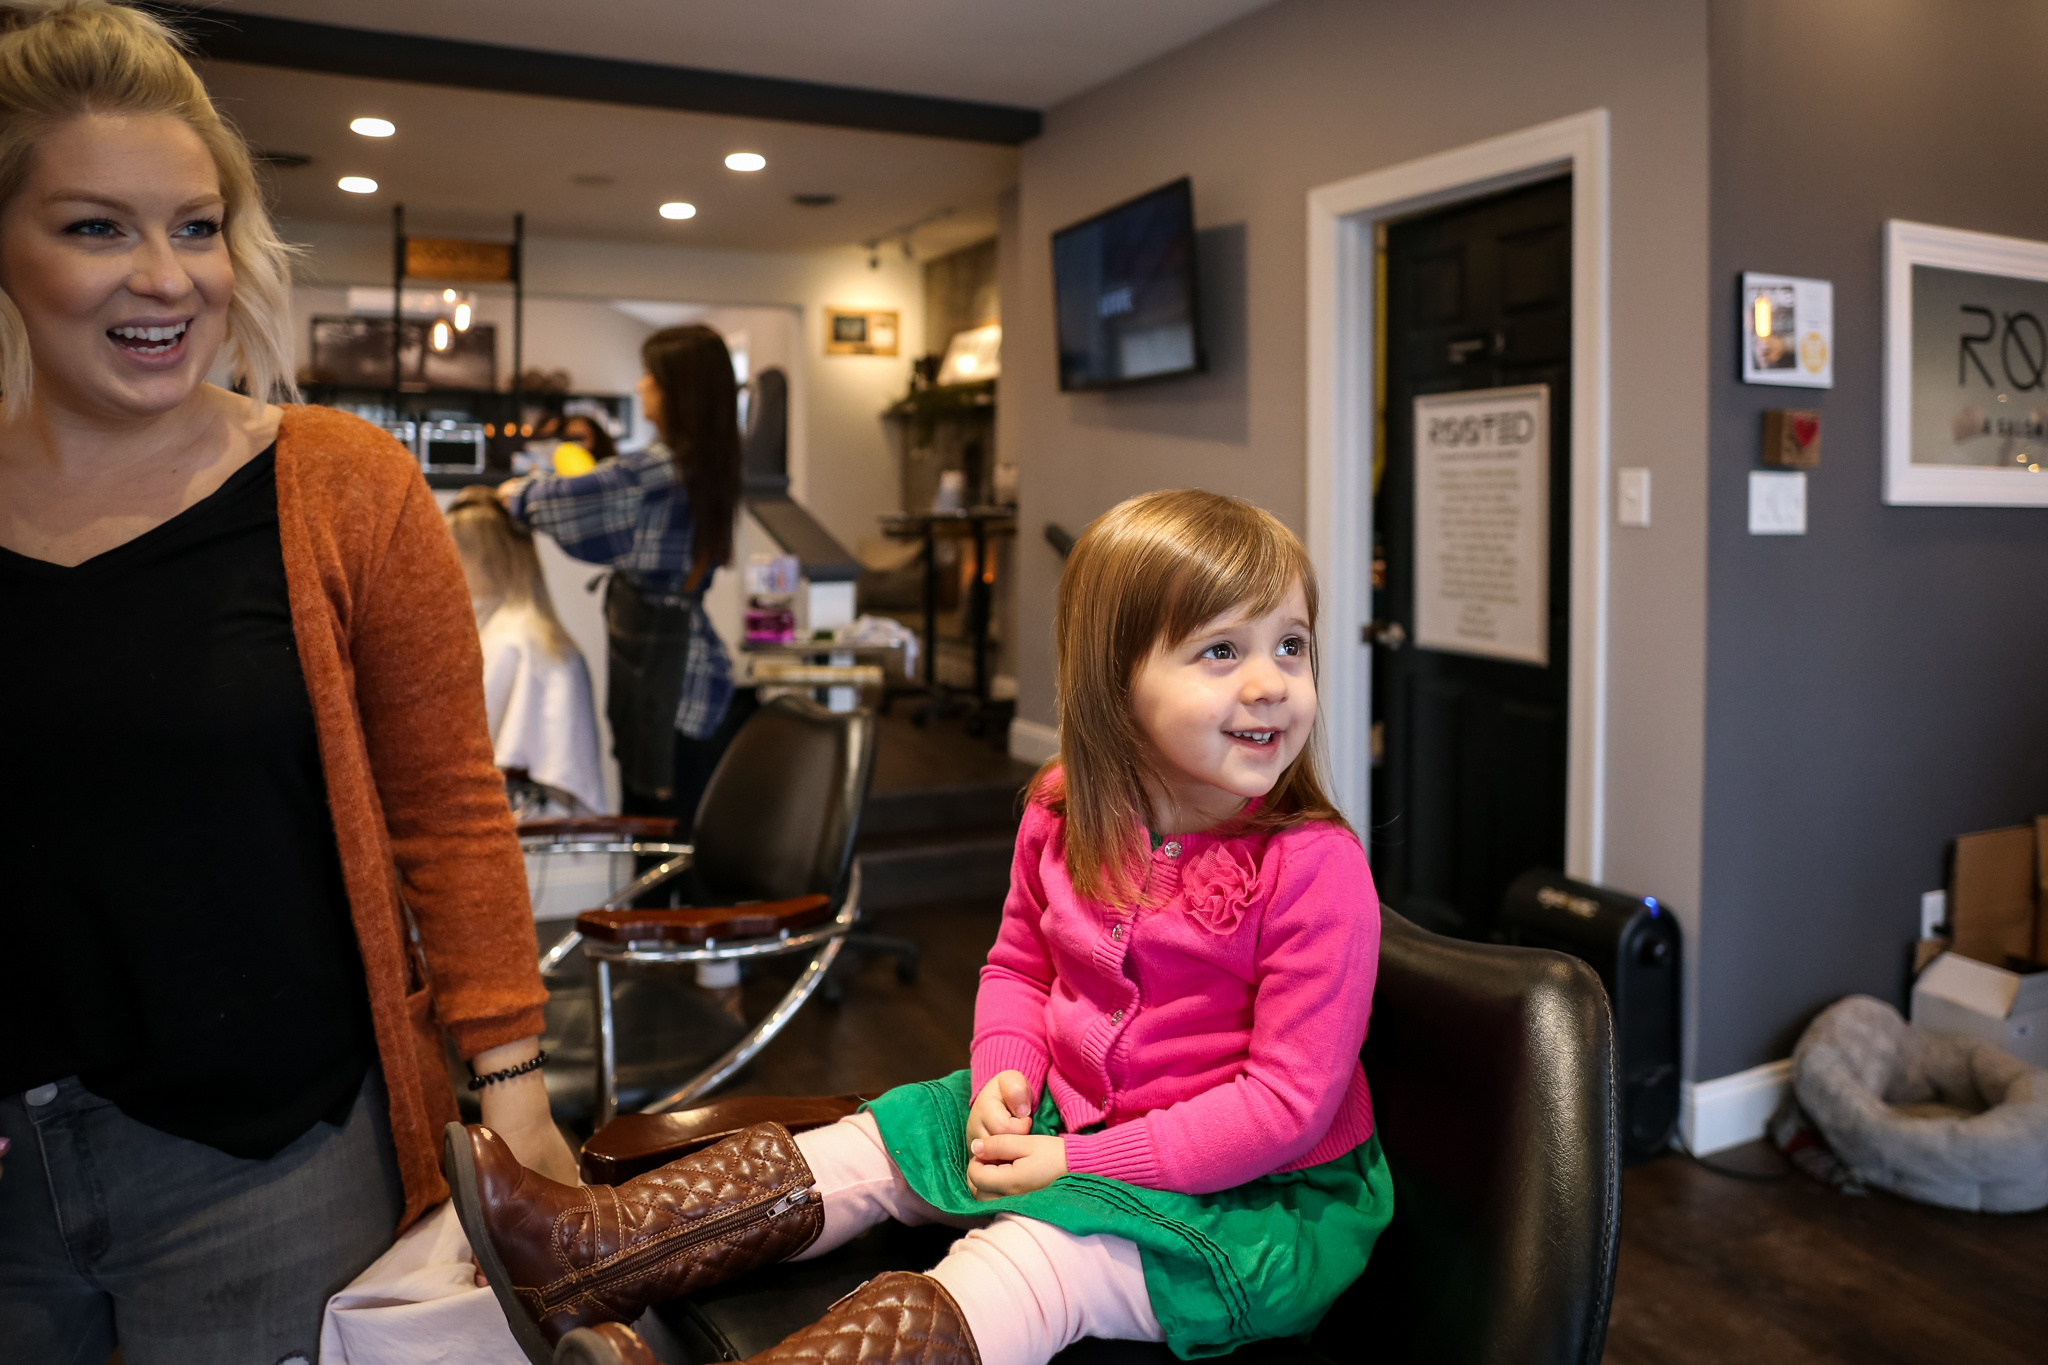 This day in the life photography session led us to the salon in Allentown, PA, where this three year old little girl received a new haircut she loves.